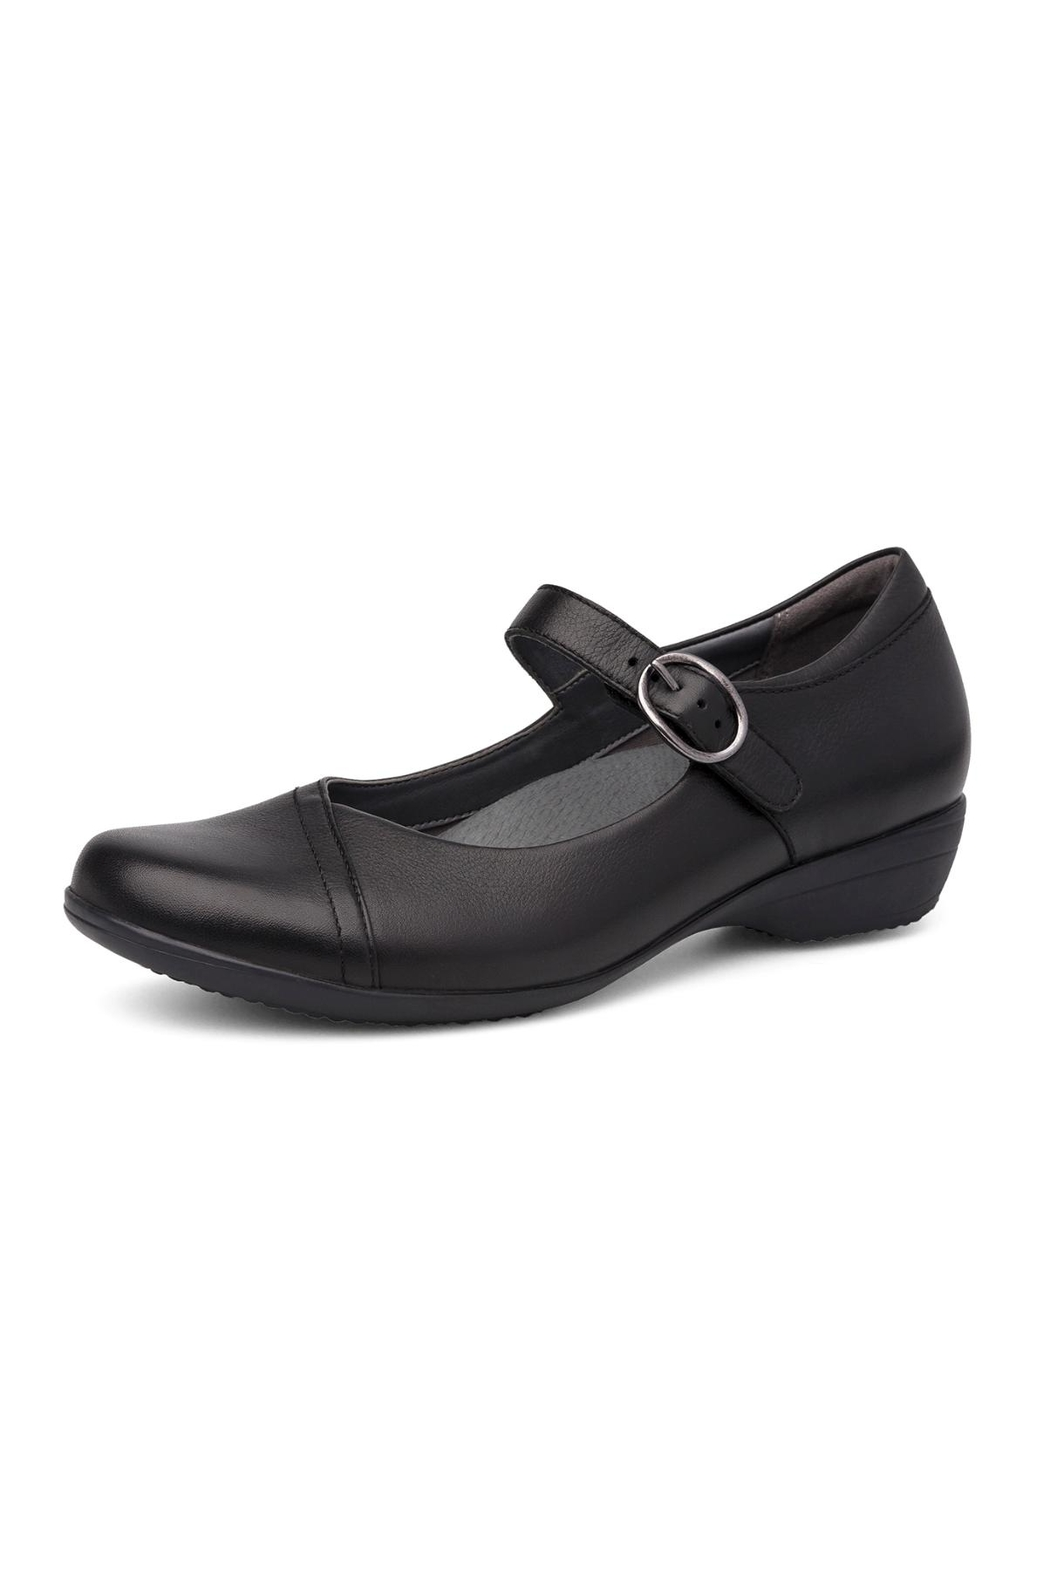 Dansko Fawna Black Shoes - Front Cropped Image